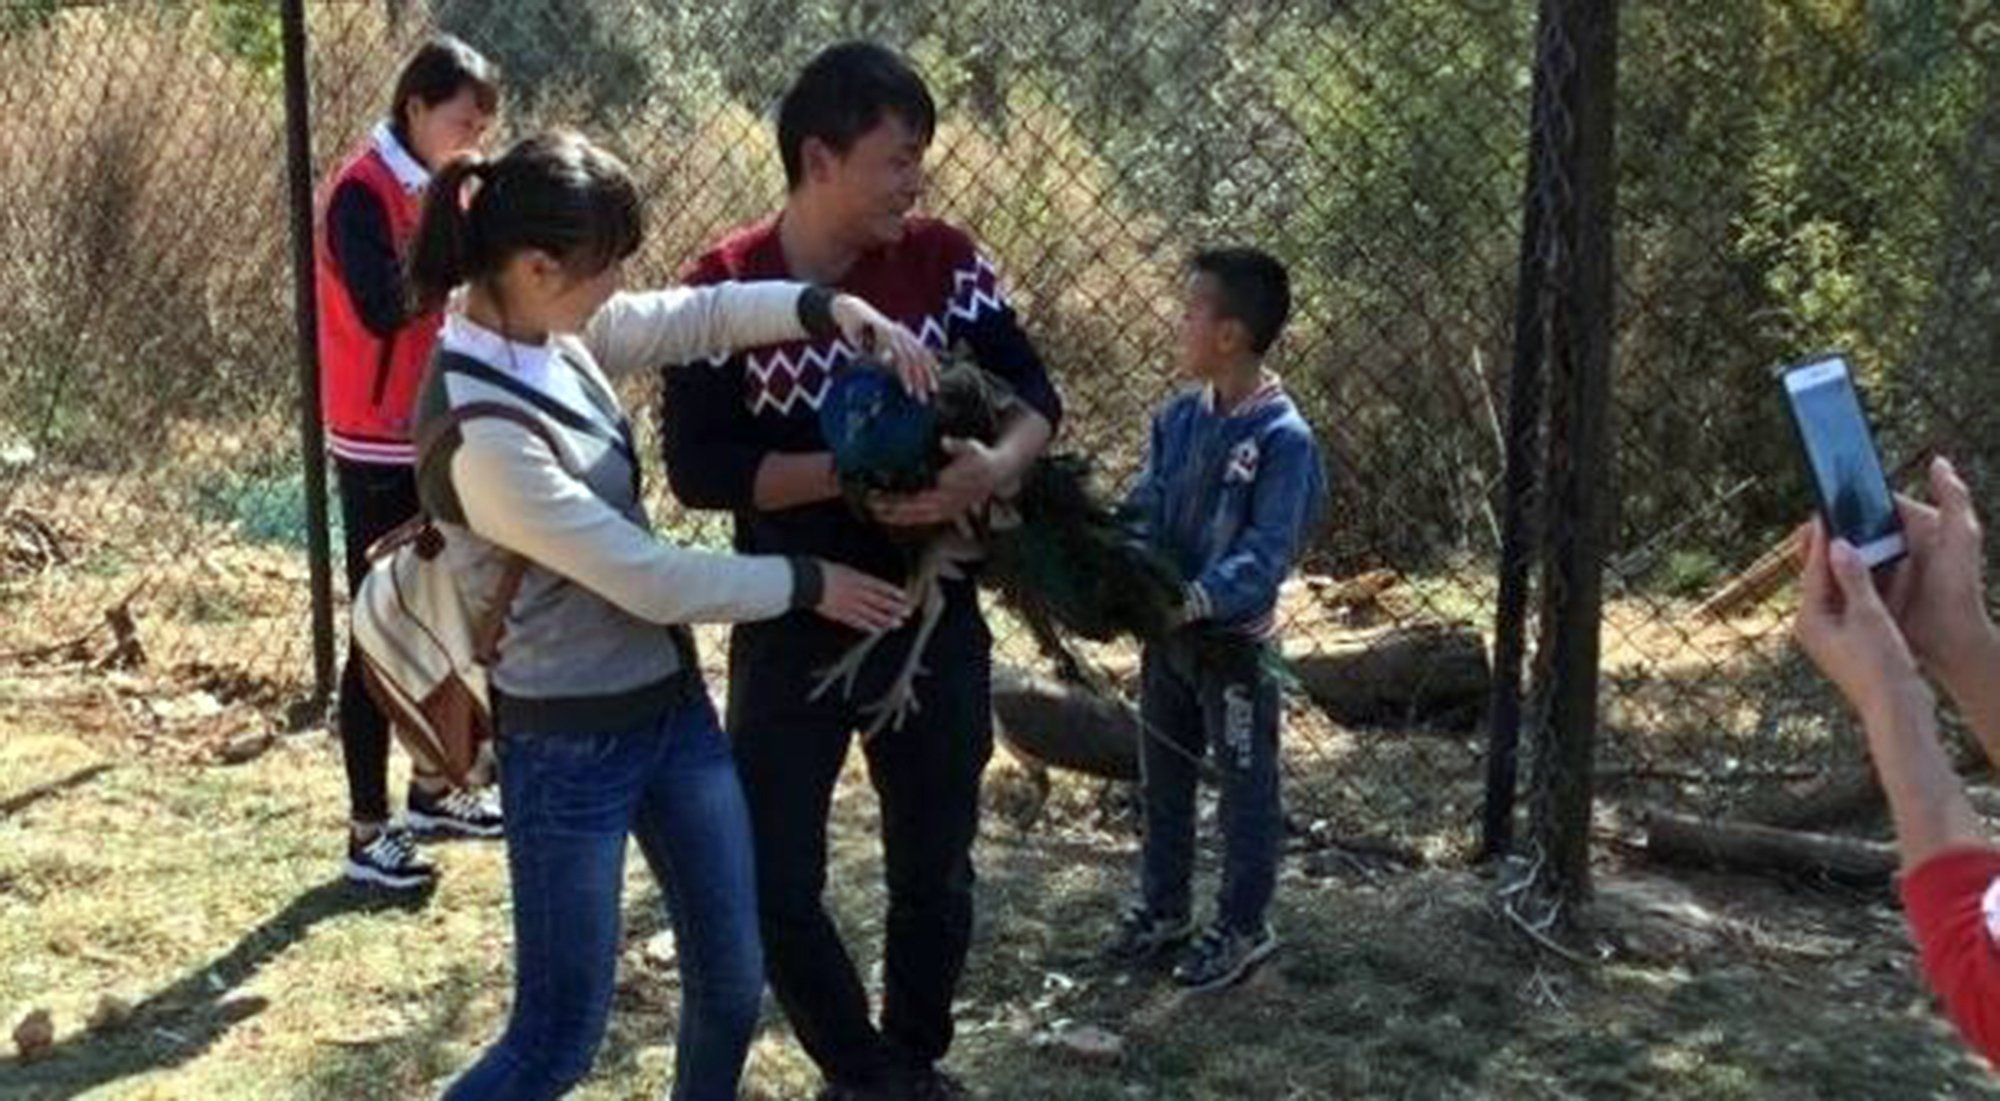 """Pic shows: the scenes in which the tourists plucked the peacocks' feathers. Chinese tourists behaving badly are accused of grabbing peacocks and killing them by plucking out their tail feathers, and then hanging on to them to take selfies. The incident happened in Kunming city, in central China's Yunnan Province which was already hit by controversy over the repeated abuse of local seagulls by tourists. They have been photographed being grabbed for selfies, as well as another incident in which a tourist snapped himself taking shots at them. This time however it is peacocks that have been the subject of tourist abuse at the Yunnan Wild Animal Park. It is home to around 6,800 peacocks with one of the main attractions being allowing tourists to roam among the birds, although managers of the park make it clear that the peacocks are not to be touched. However that didn't stop some tourists over the weekend and in snaps posted online it showed the tourists going a stage further and grabbing hold of the peacocks. After the images emerged the zoo confirmed the deaths of two of its peacocks during the Spring Festival holiday and said a complaint had been made to police. Officers meanwhile confirmed that it appeared the peacocks had died because of the """"violent behavior"""" of tourists that included holding the birds too tightly and pulling out feathers as souvenirs Online users angry at the treatment for the birds demanded similar torture for the tourists. One said: """"I think the woman should have her hairs pulled out one by one, then she might know how it feels."""" (ends) ¿¿¿¿¿¿¿¿¿¿"""